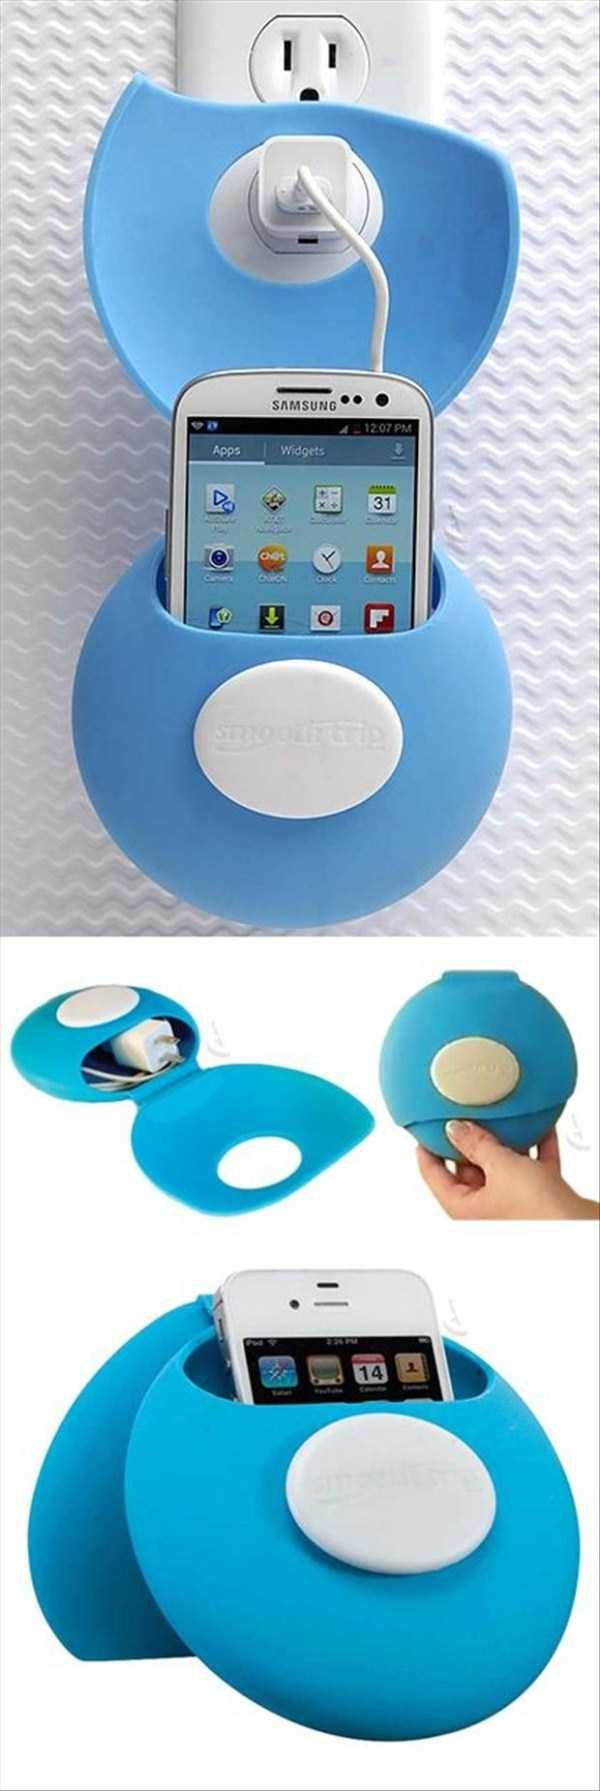 Awesome Products That Will Make Your Life Easier,,genius-ideas-5